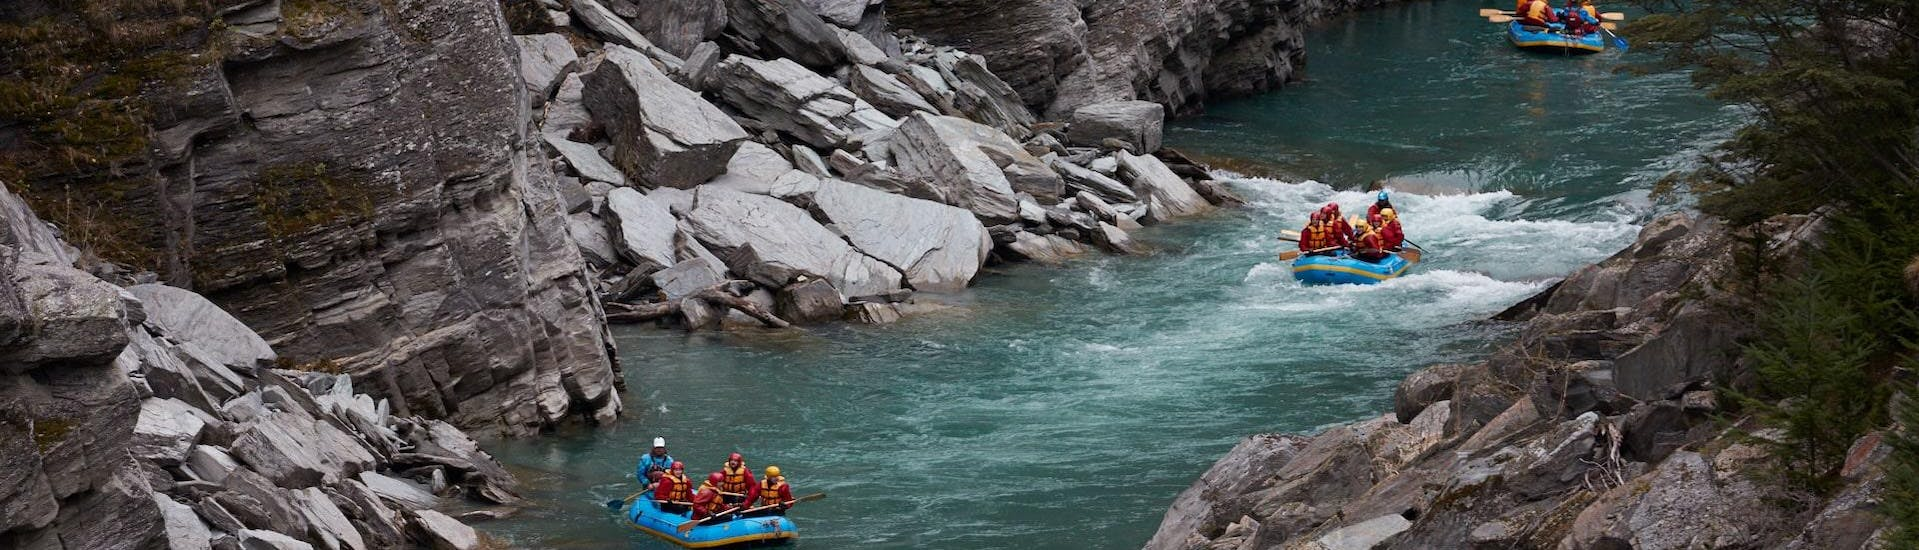 Participants of the White Water Rafting from Queenstown on Shotover River are observing rafts passing by with the local guides from Go Orange